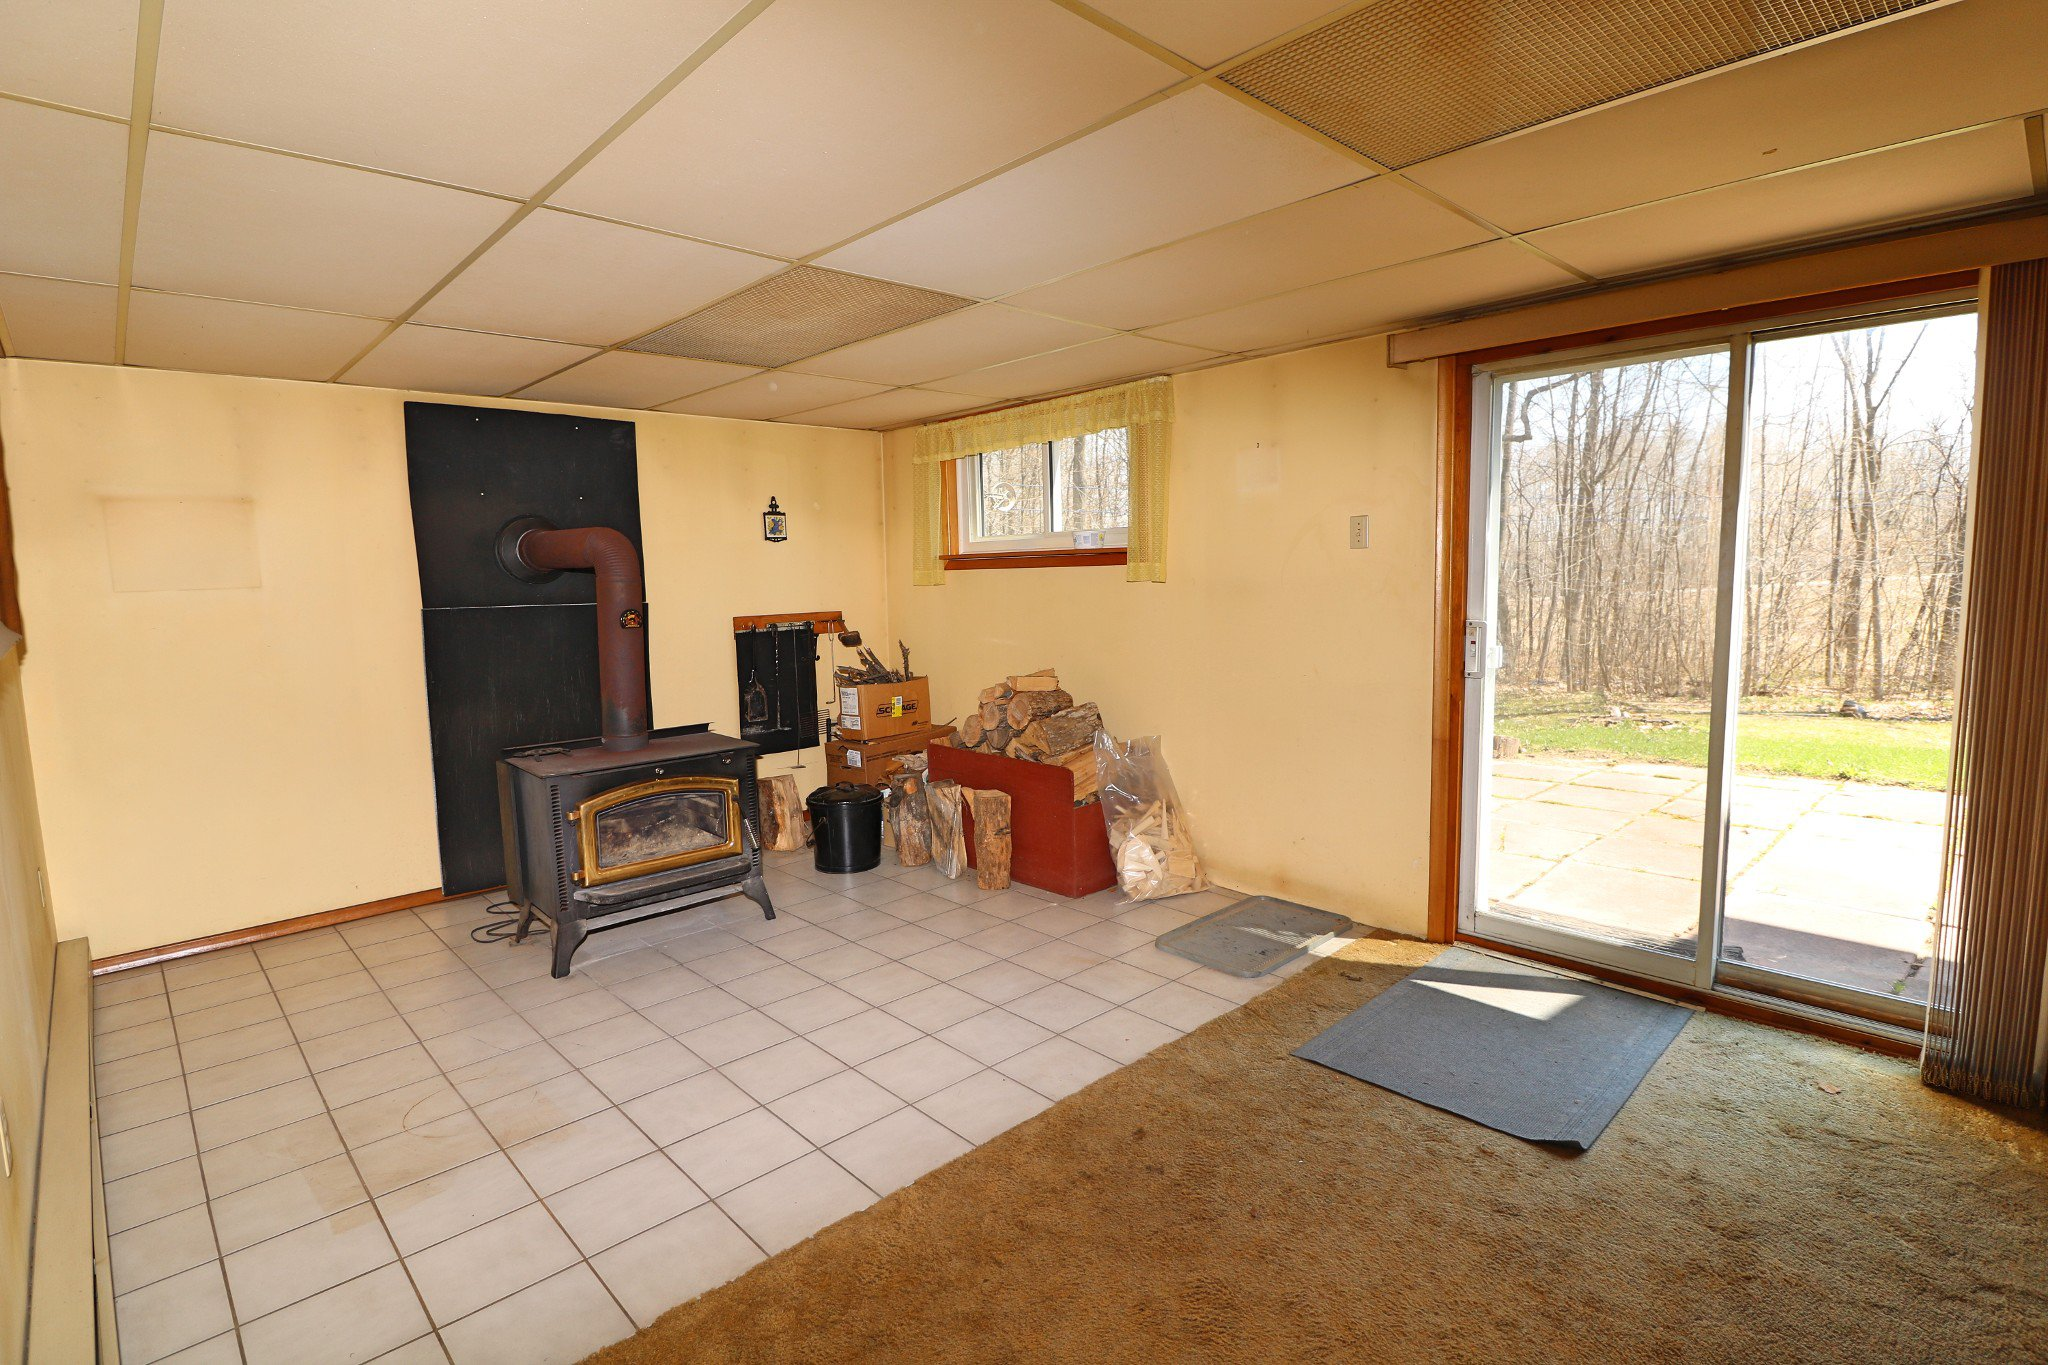 Photo 16: Photos: 37 Halstead Drive in Roseneath: Residential Detached for sale : MLS®# 192863